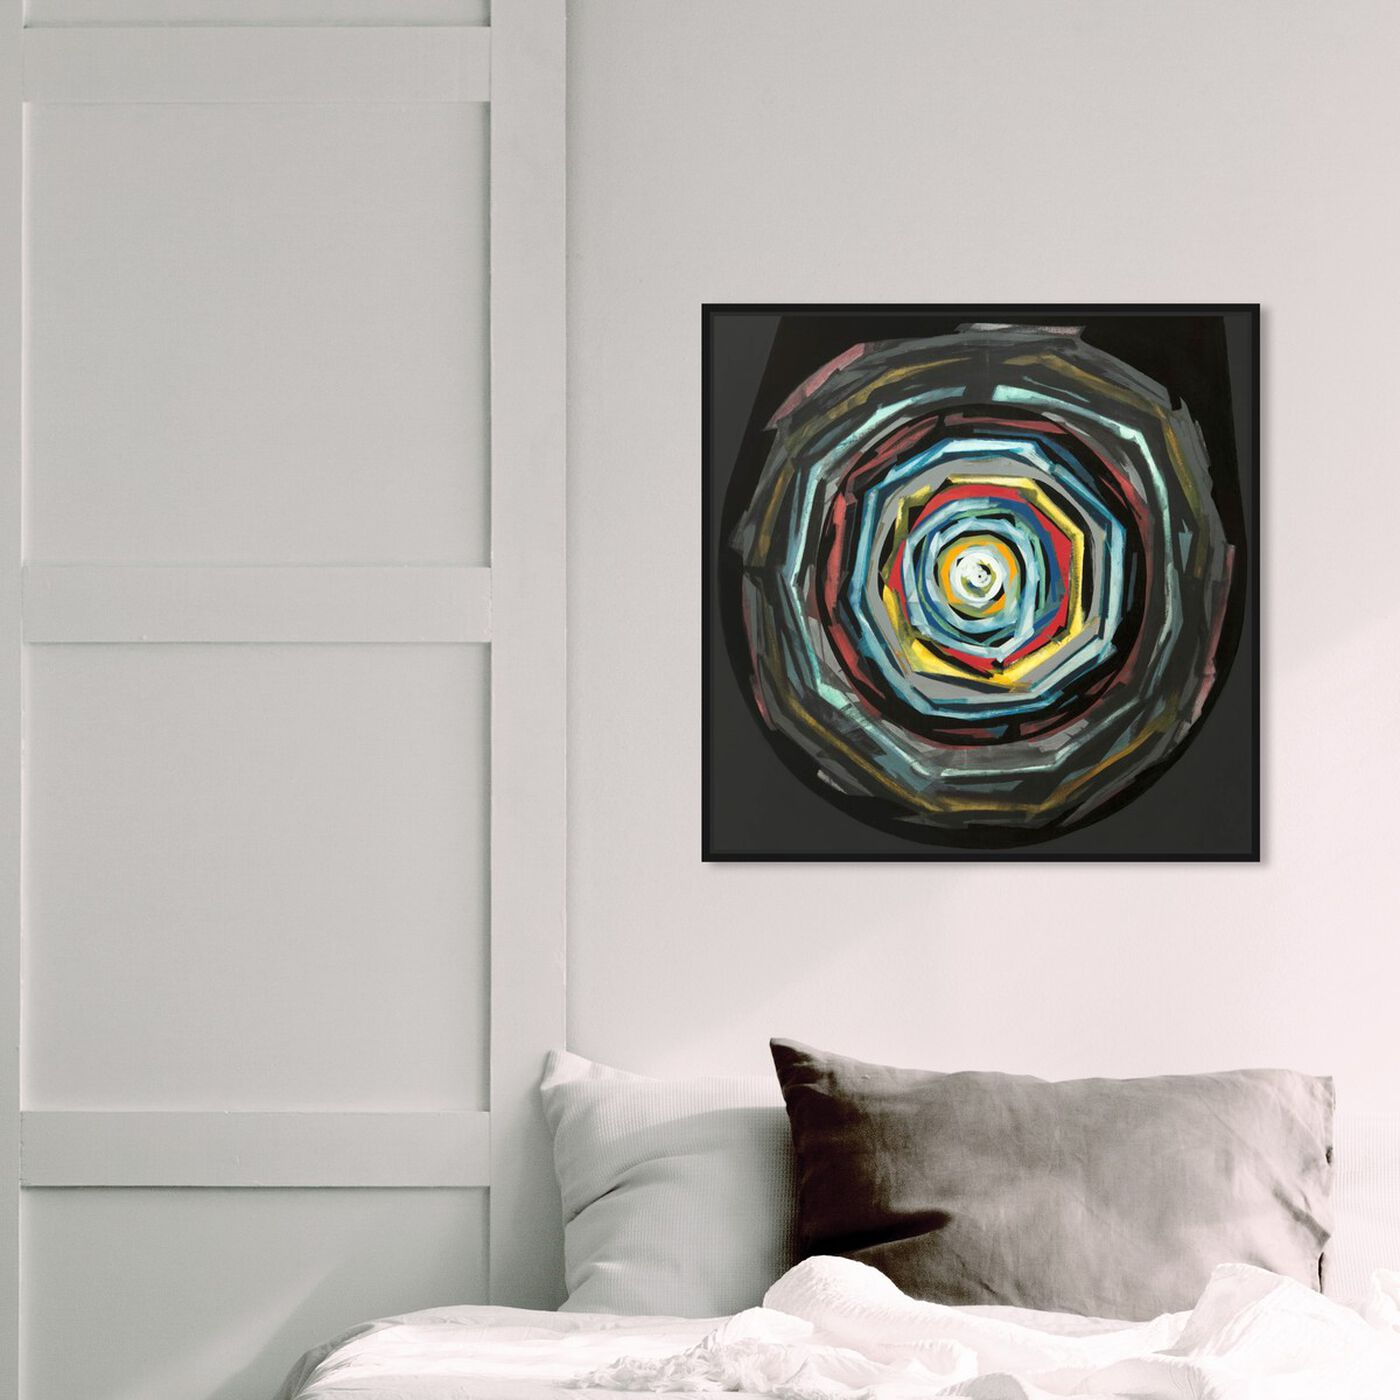 Hanging view of Sai - Pictis Spiralis II featuring abstract and paint art.